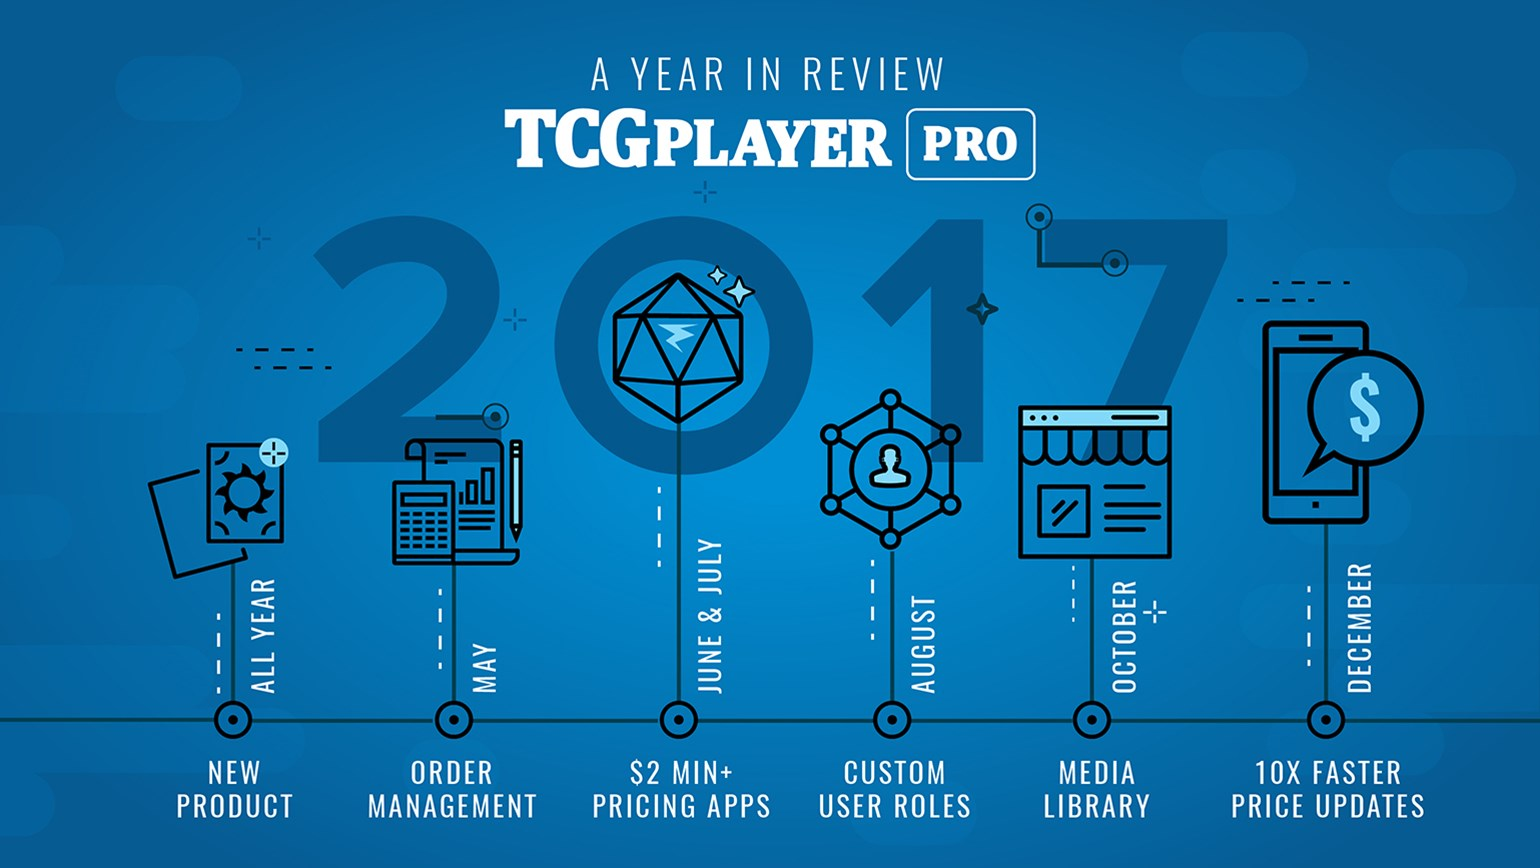 TCGplayer Pro: A Year in Review